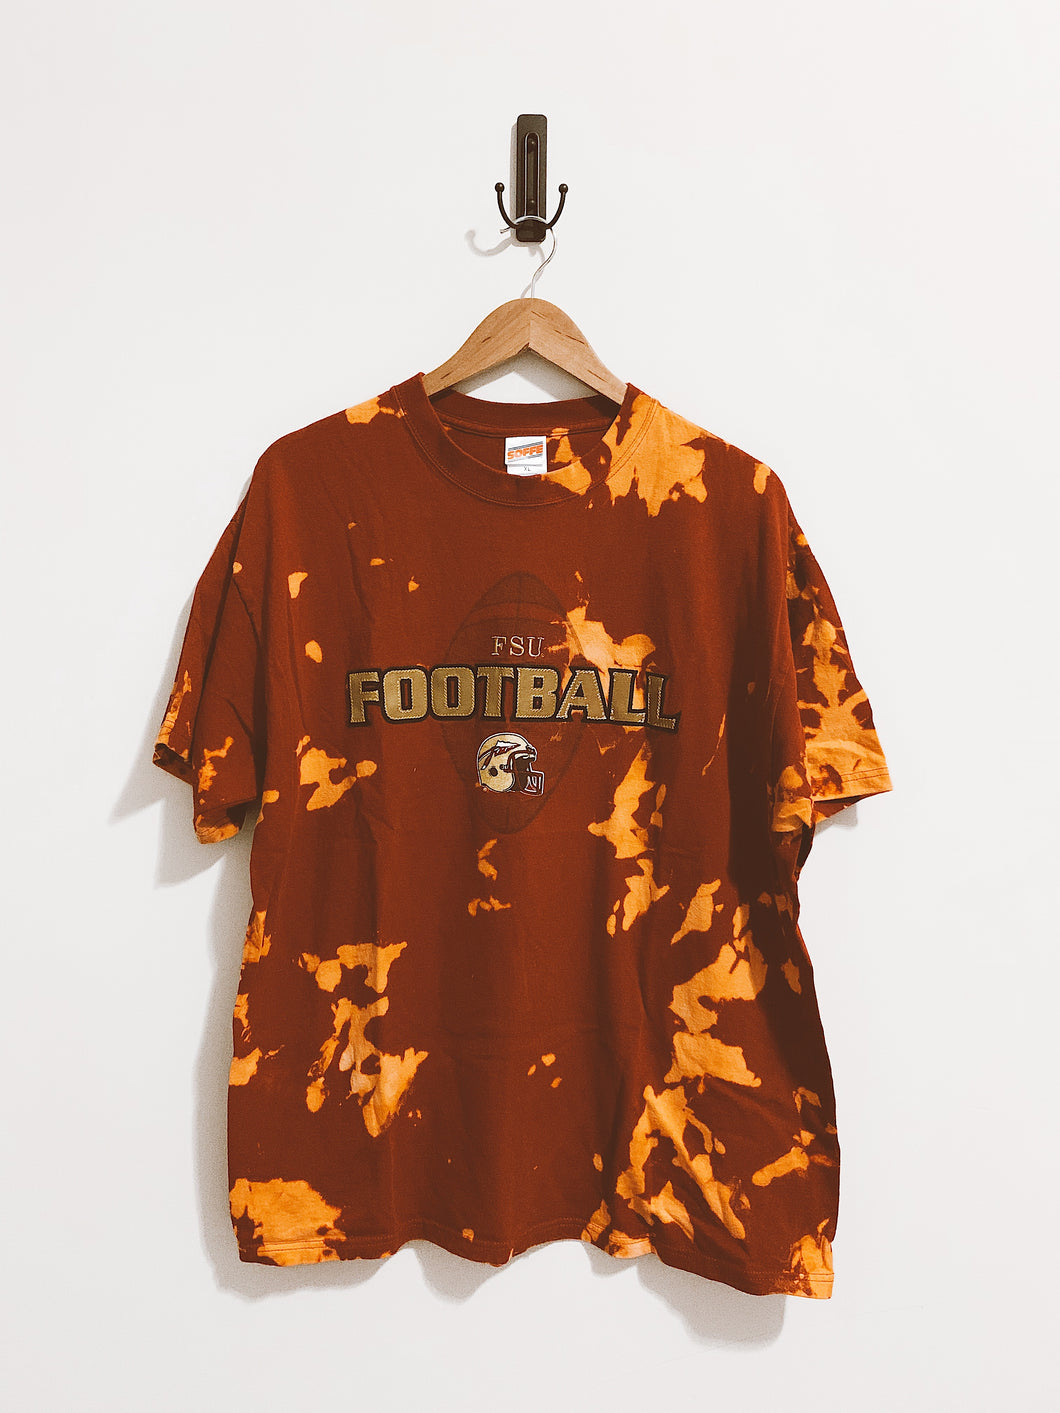 FSU Football Embroidered Tee